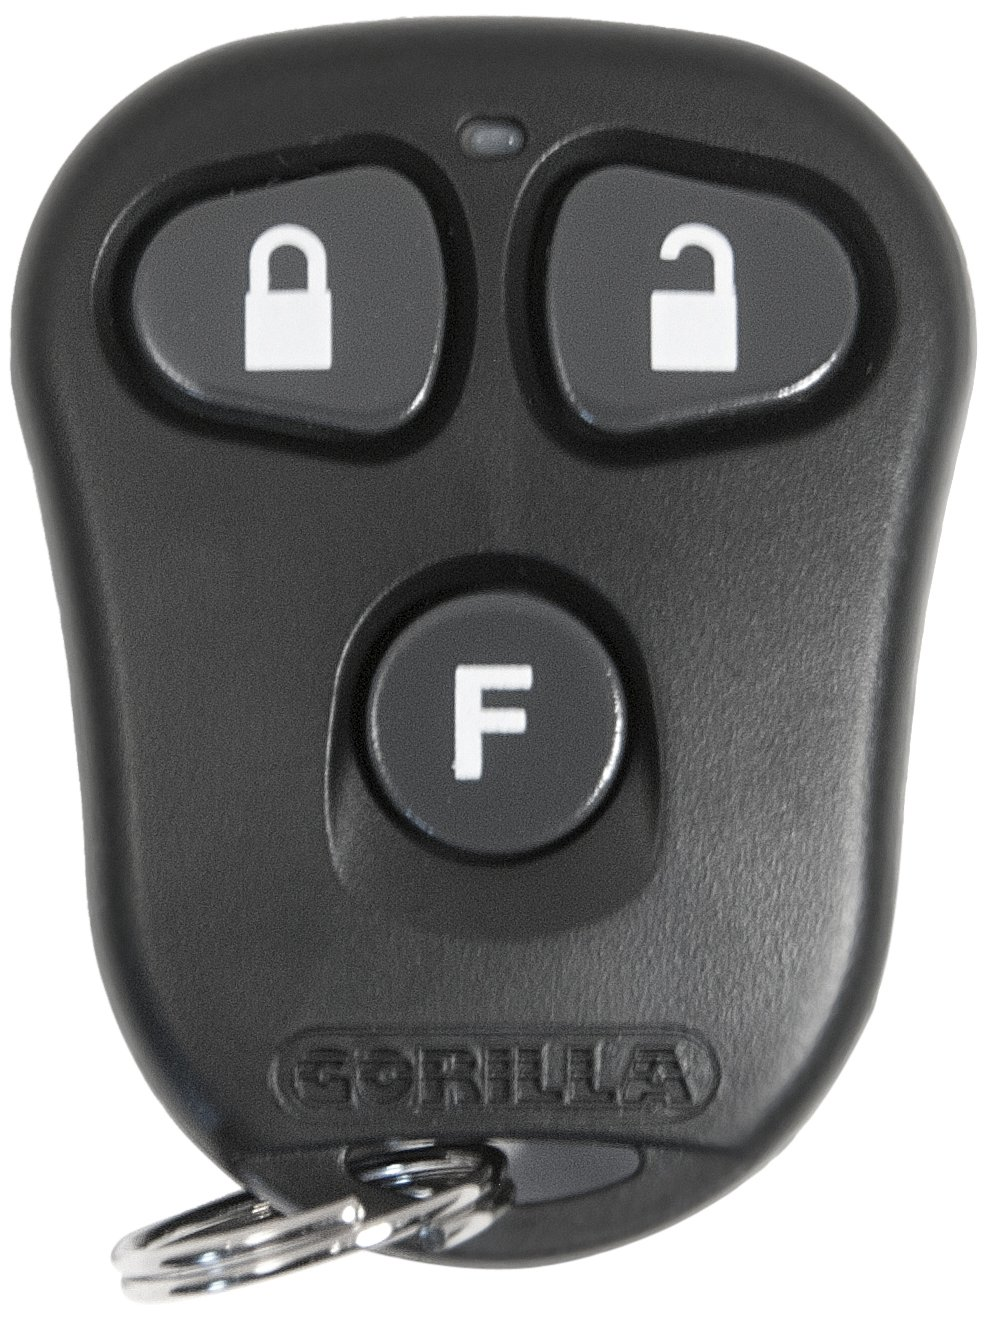 Gorilla Automotive 8007-3B Remote Transmitter for 8007/8017 and 9-Series Cycle Alarms